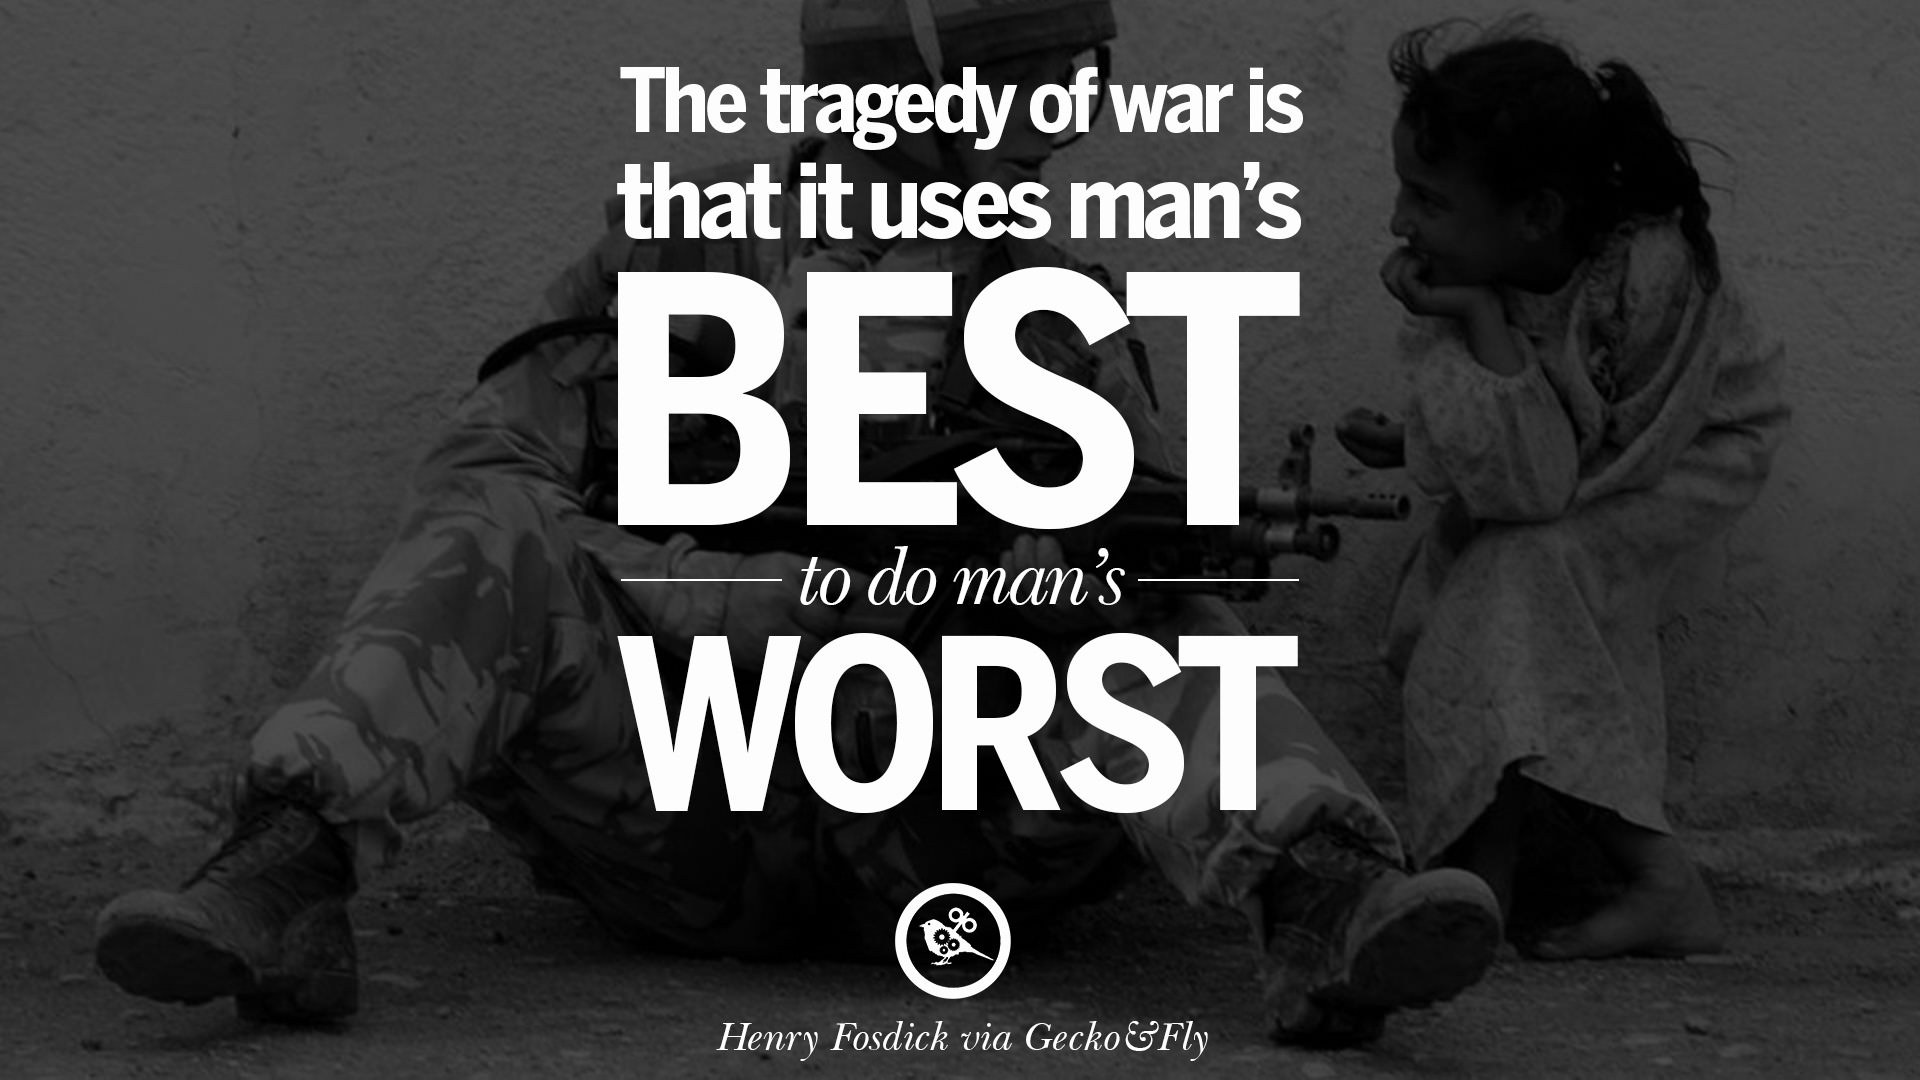 12 Famous Quotes About War On World Peace, Death, Violence